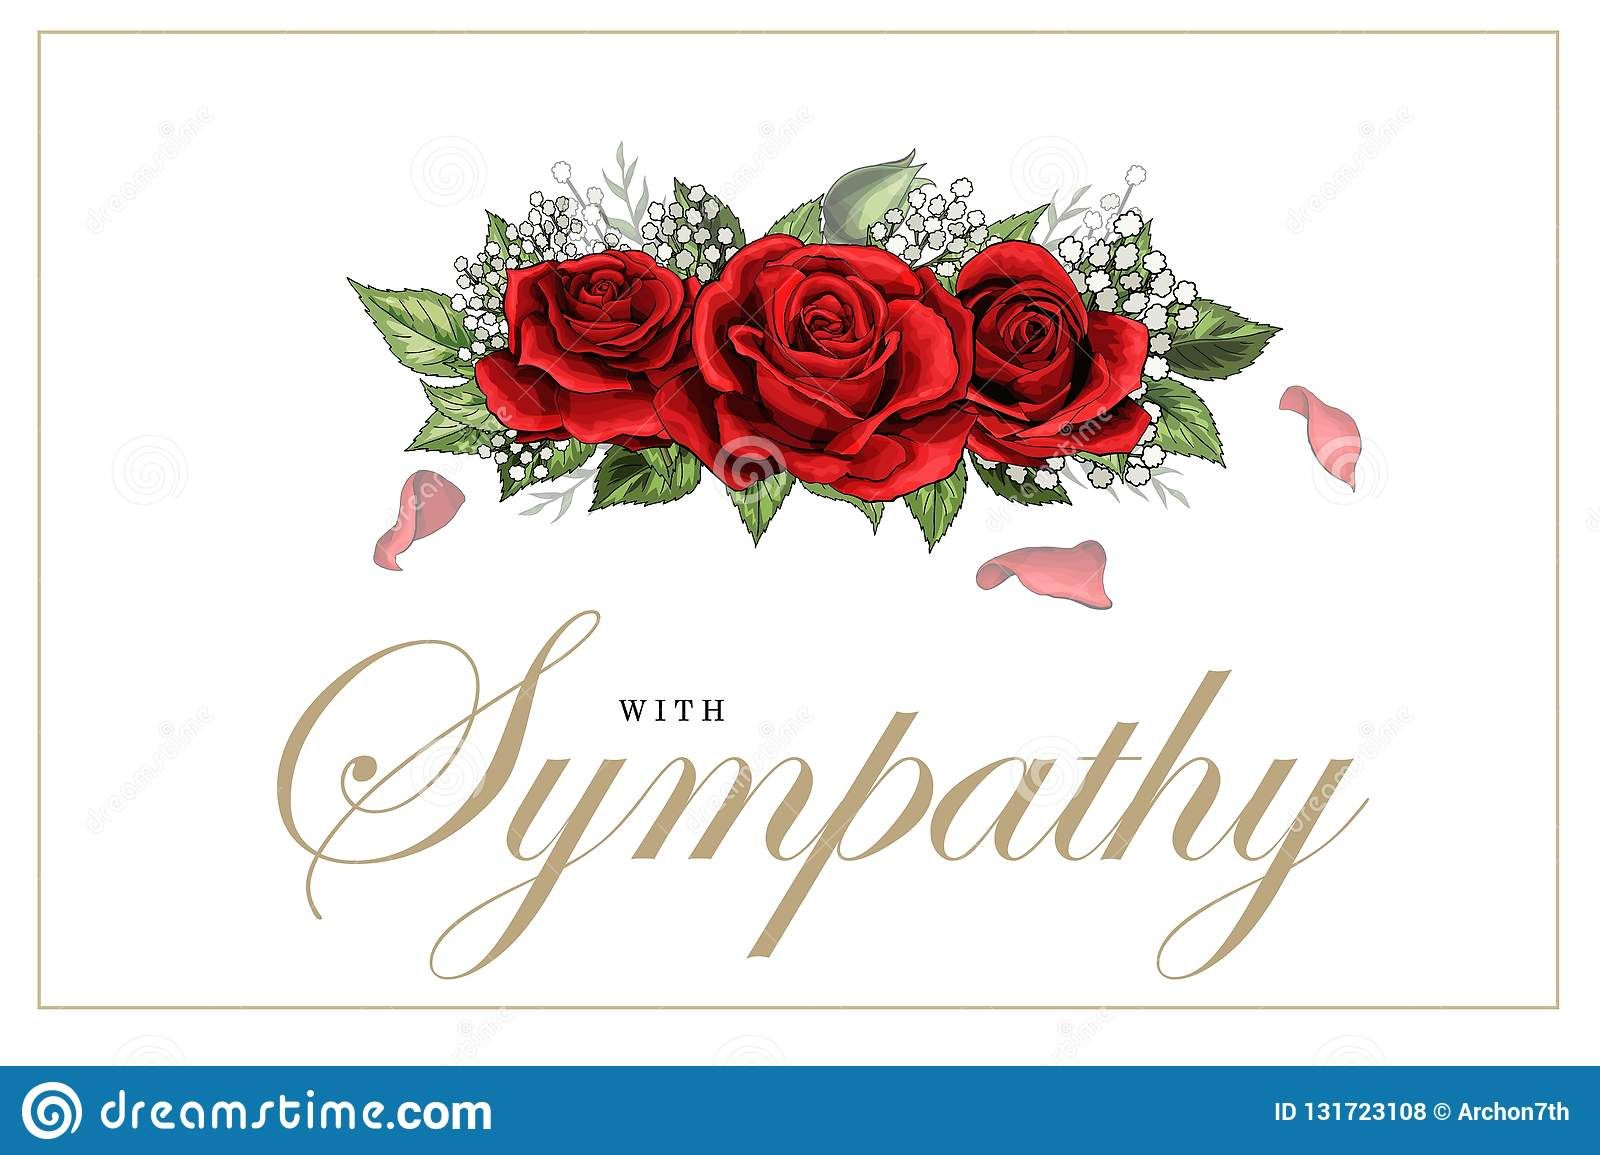 The Enchanting Condolences Sympathy Card Floral Red Roses Bouquet And With Regard To Sorry For Your Loss Card Template Di Sympathy Cards Red Rose Bouquet Cards